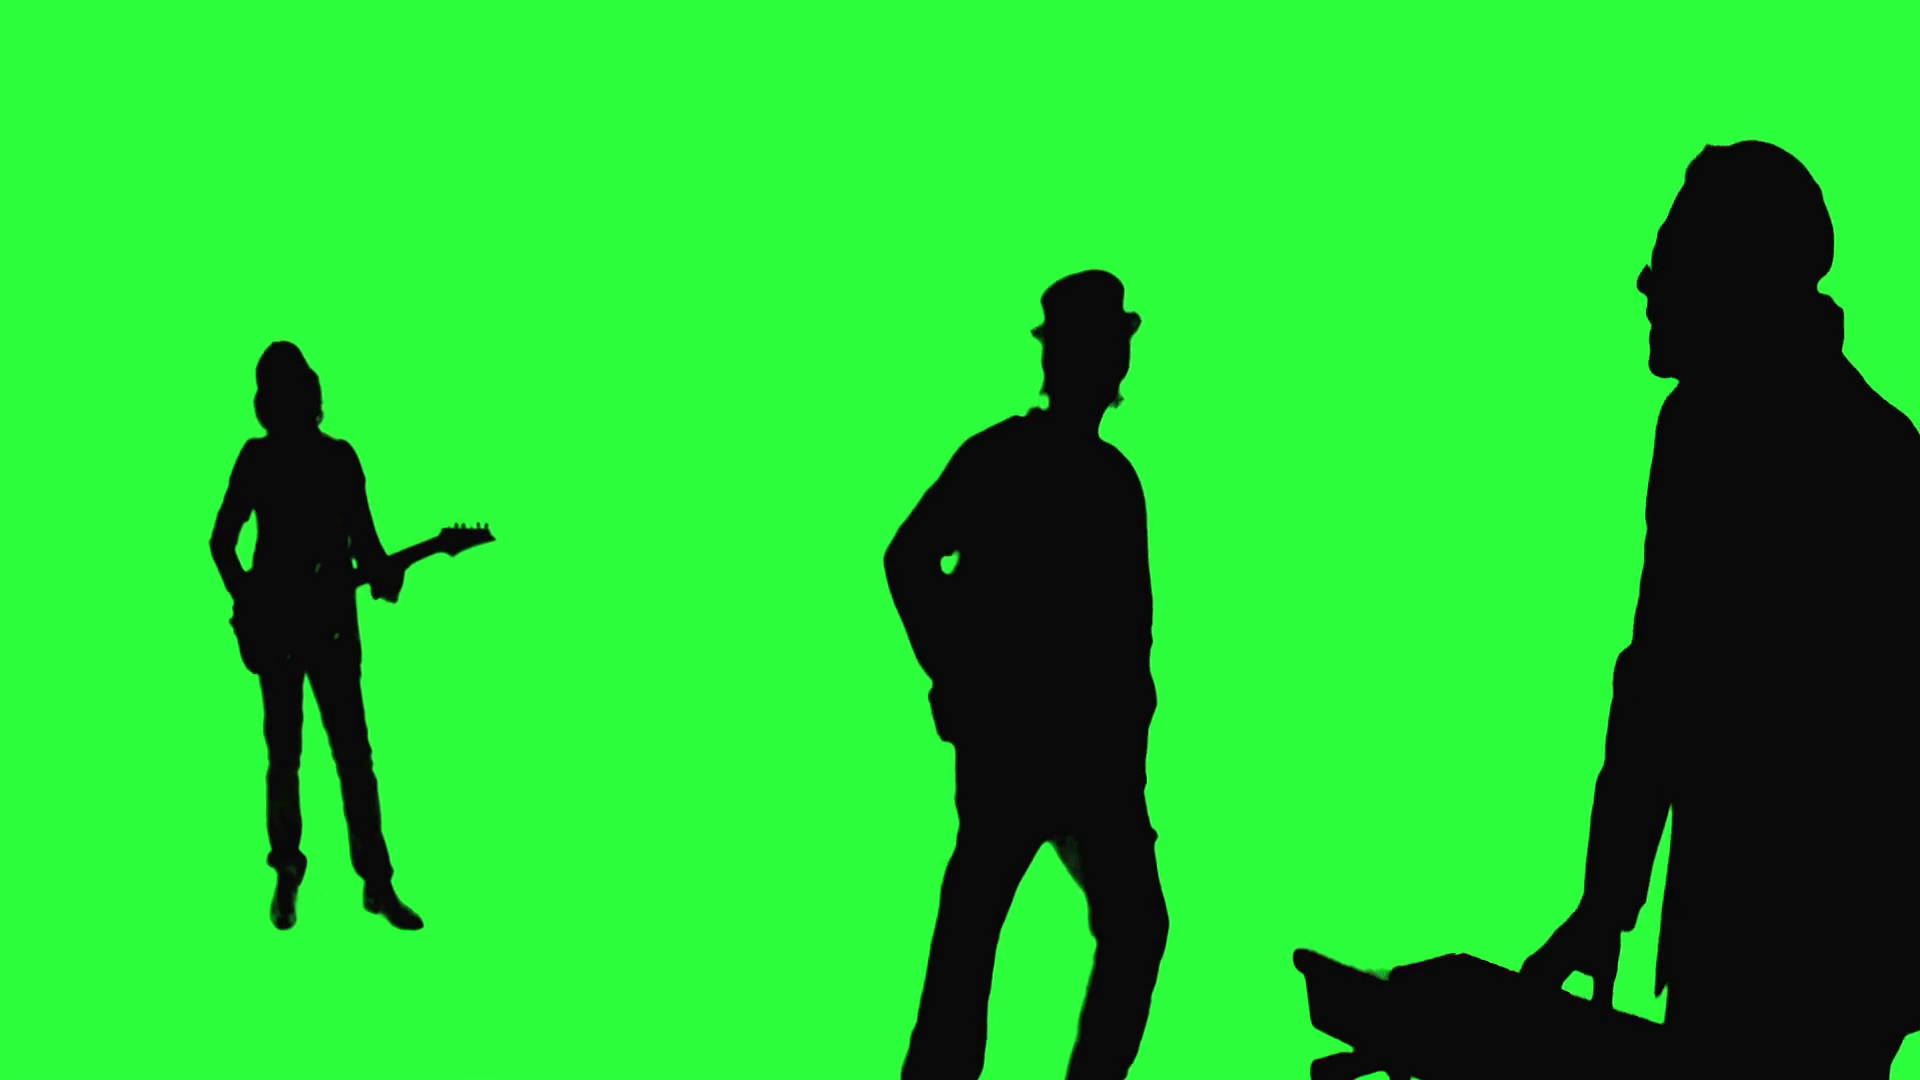 1920x1080 Cool rock band performing on the Green Screen Motion Background